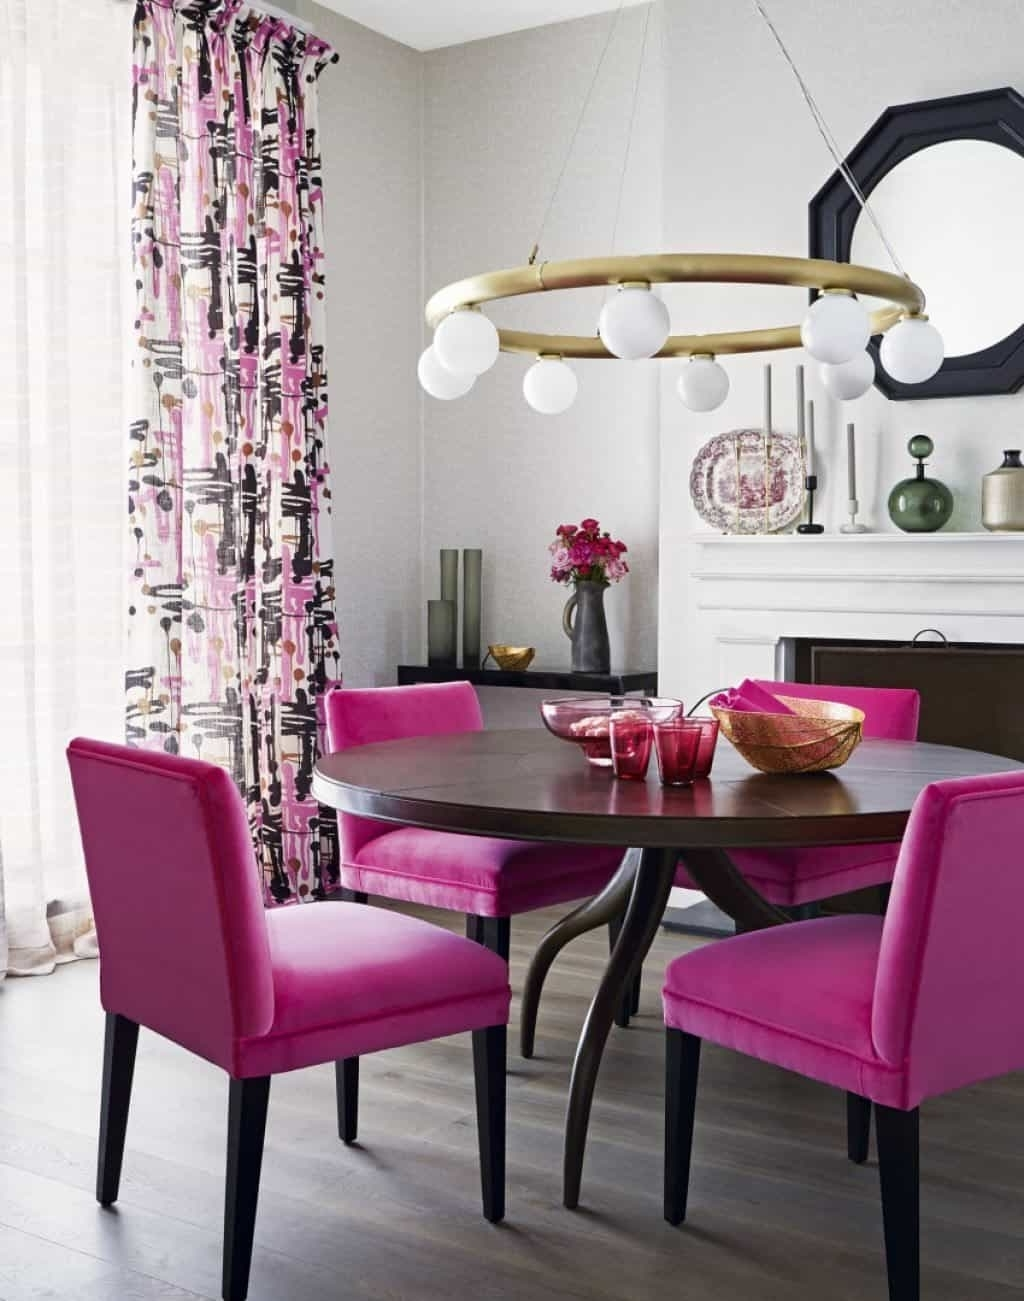 Magzboomers Intended For Dining Tables And Purple Chairs (View 15 of 25)